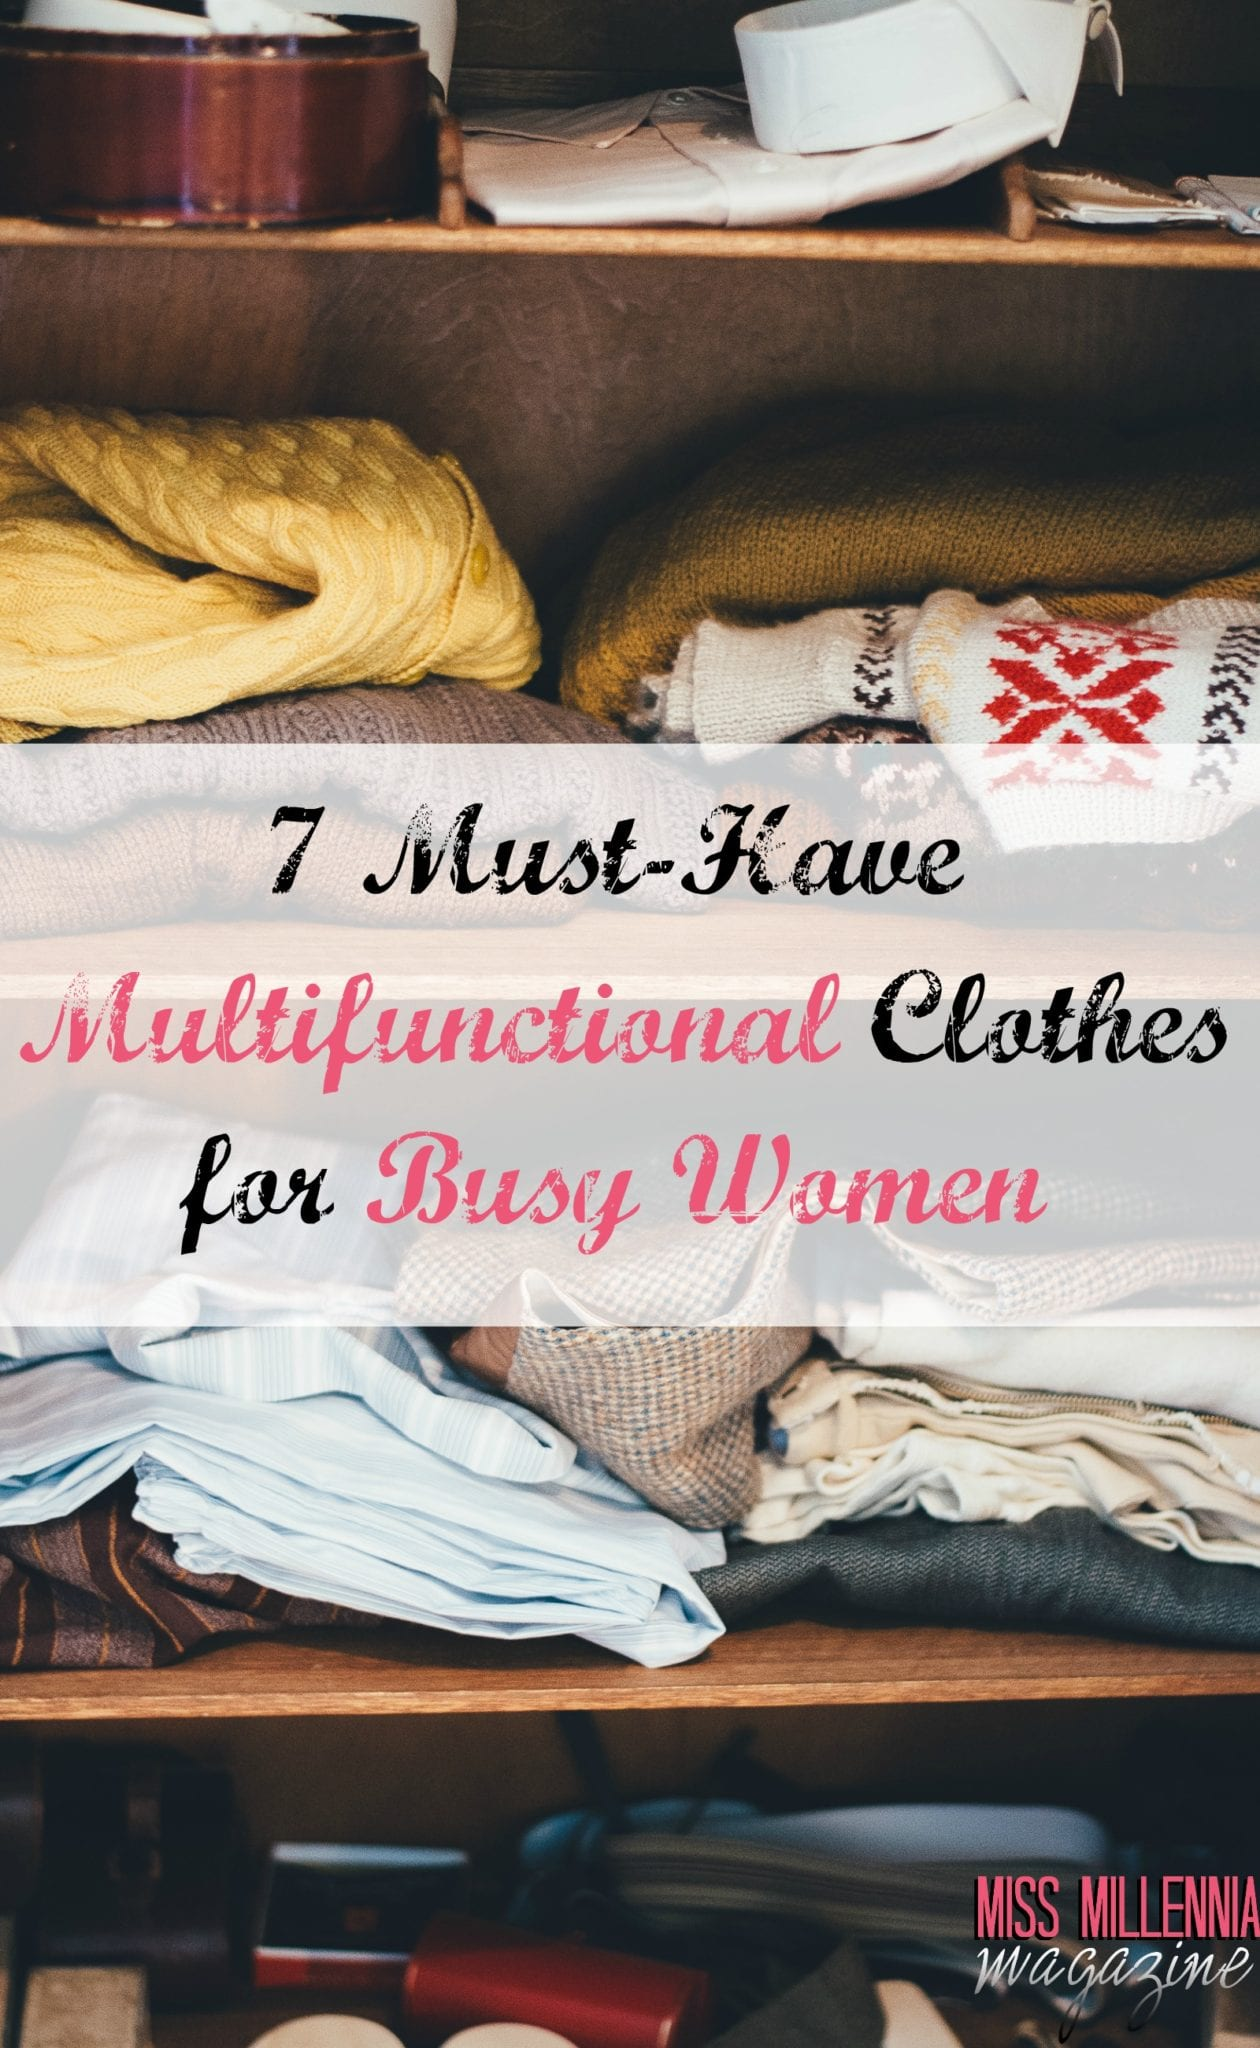 7 Must Have Kitchen Tools Every Home Needs: 7 Must-Have Multifunctional Clothes For Busy Women